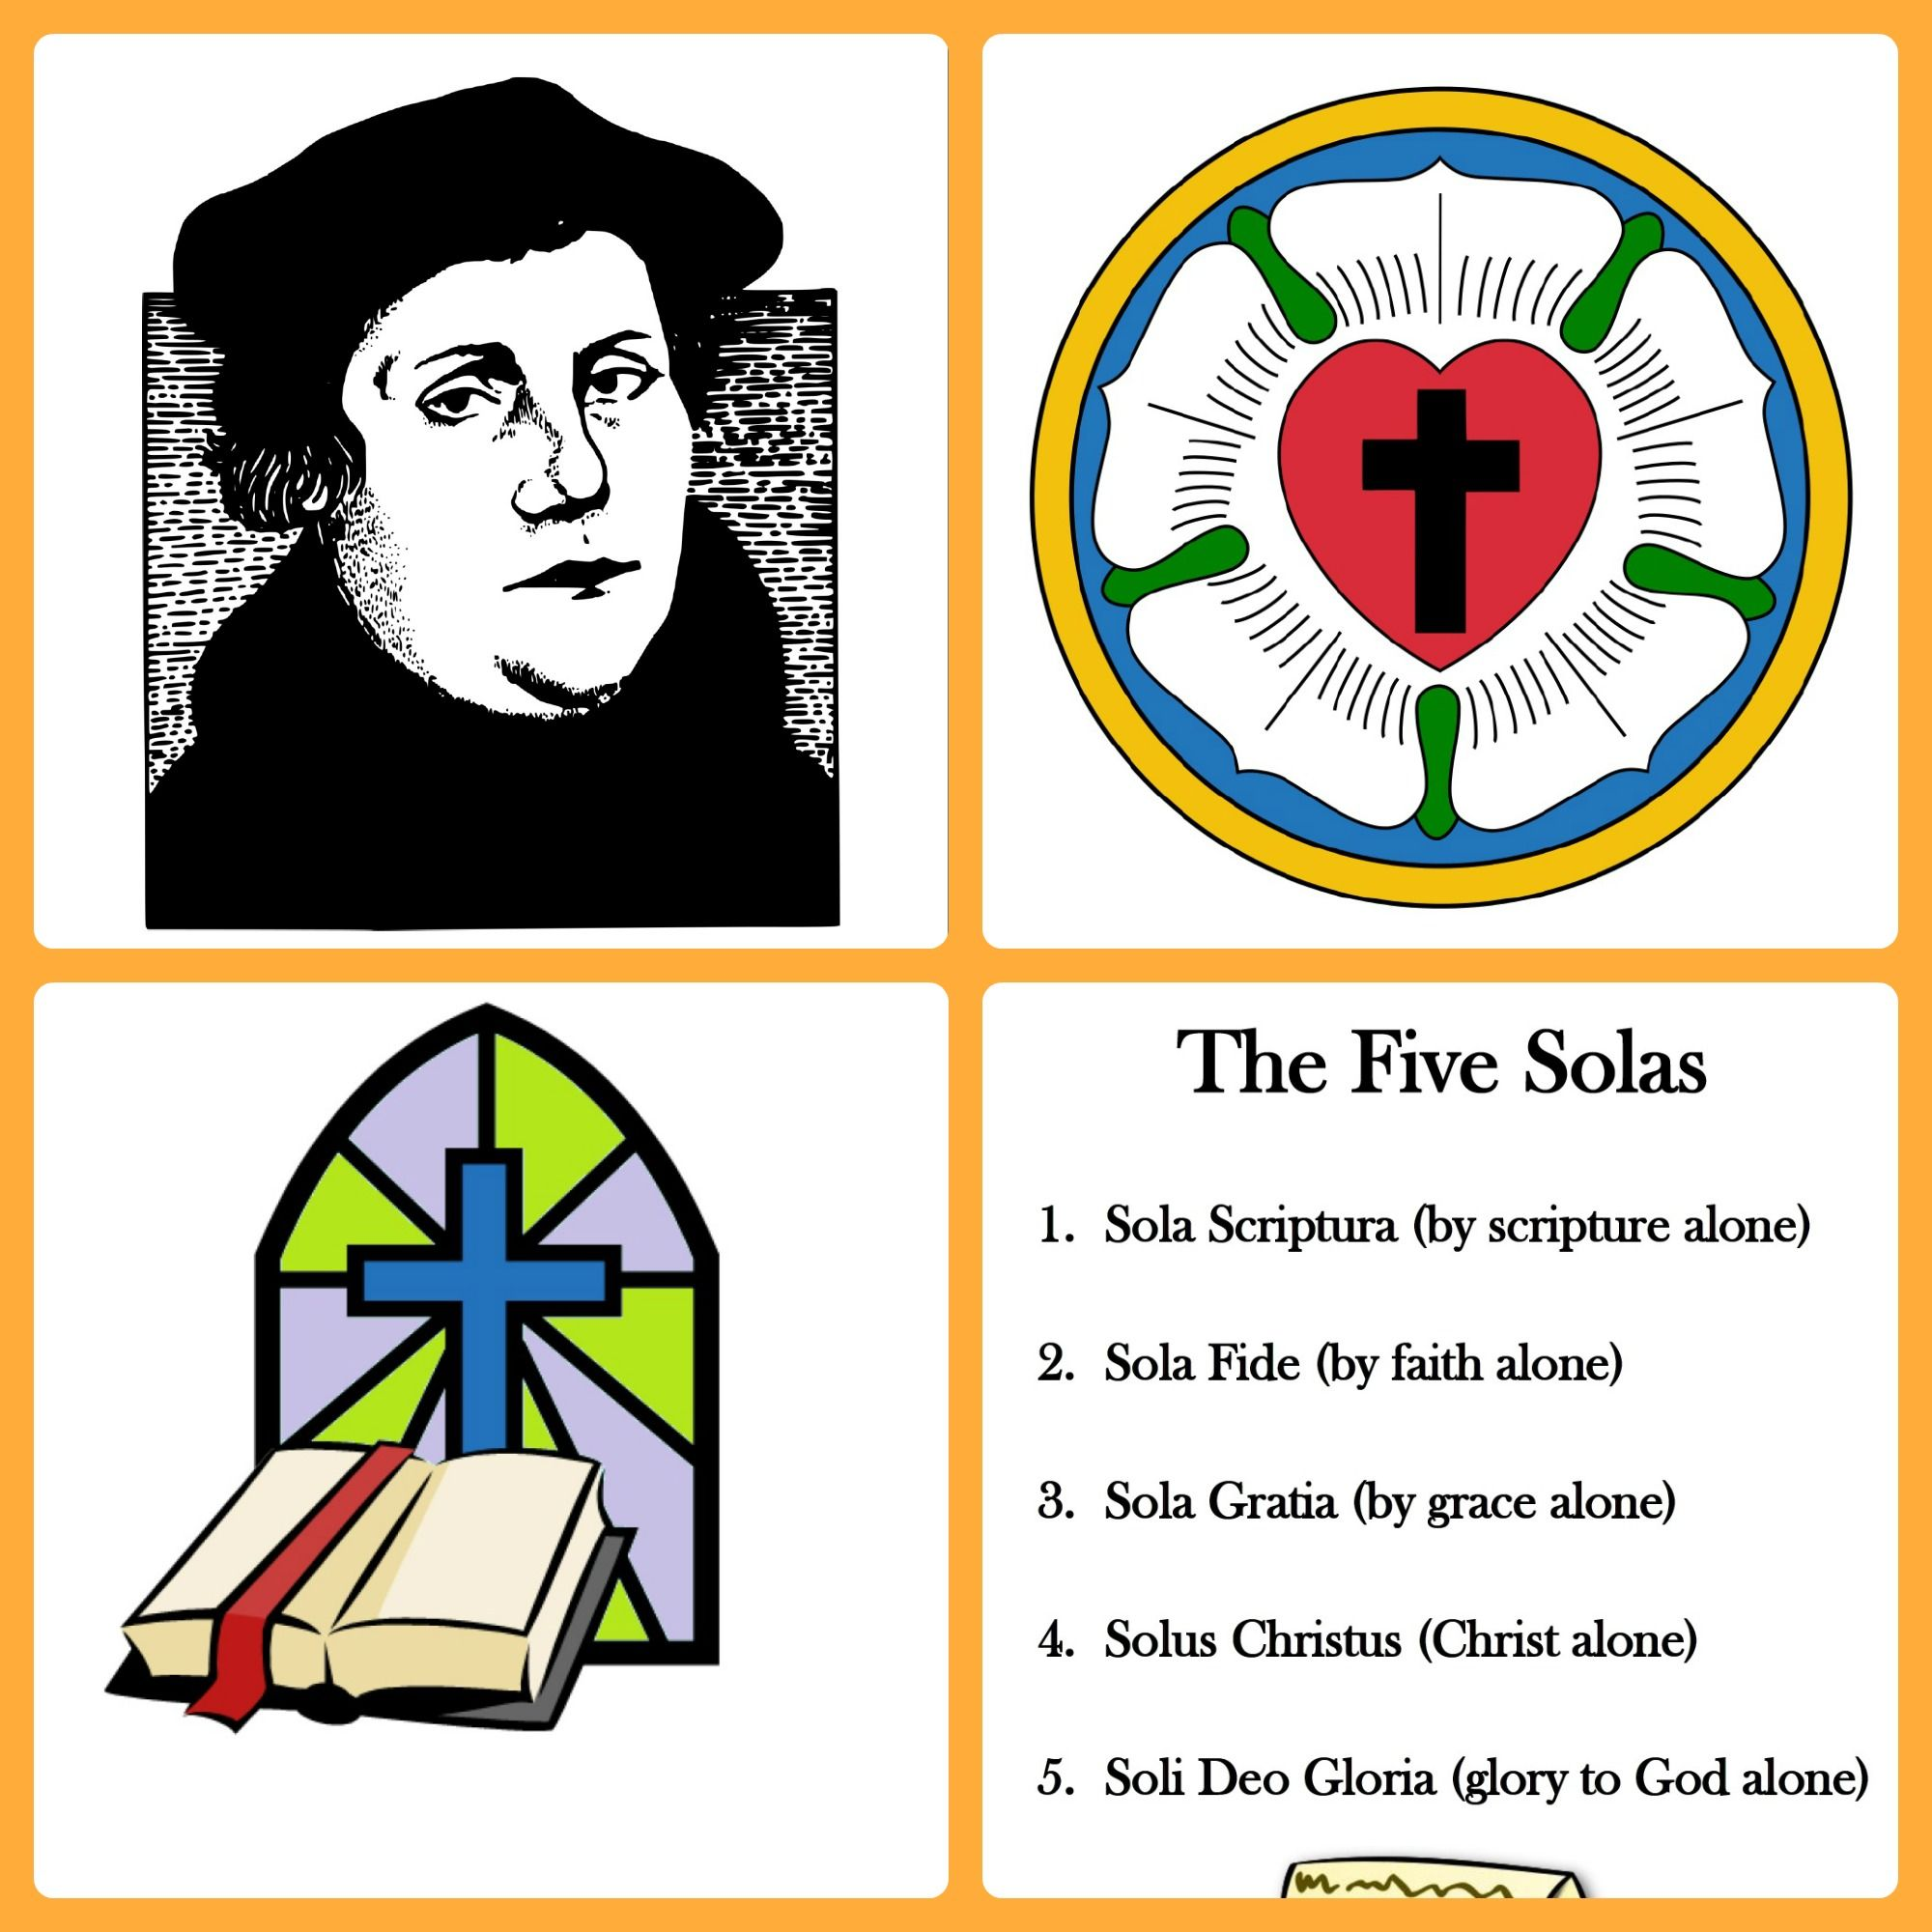 2000x2000 Did You Know That On October 31, 1517, Martin Luther Nailed His 95